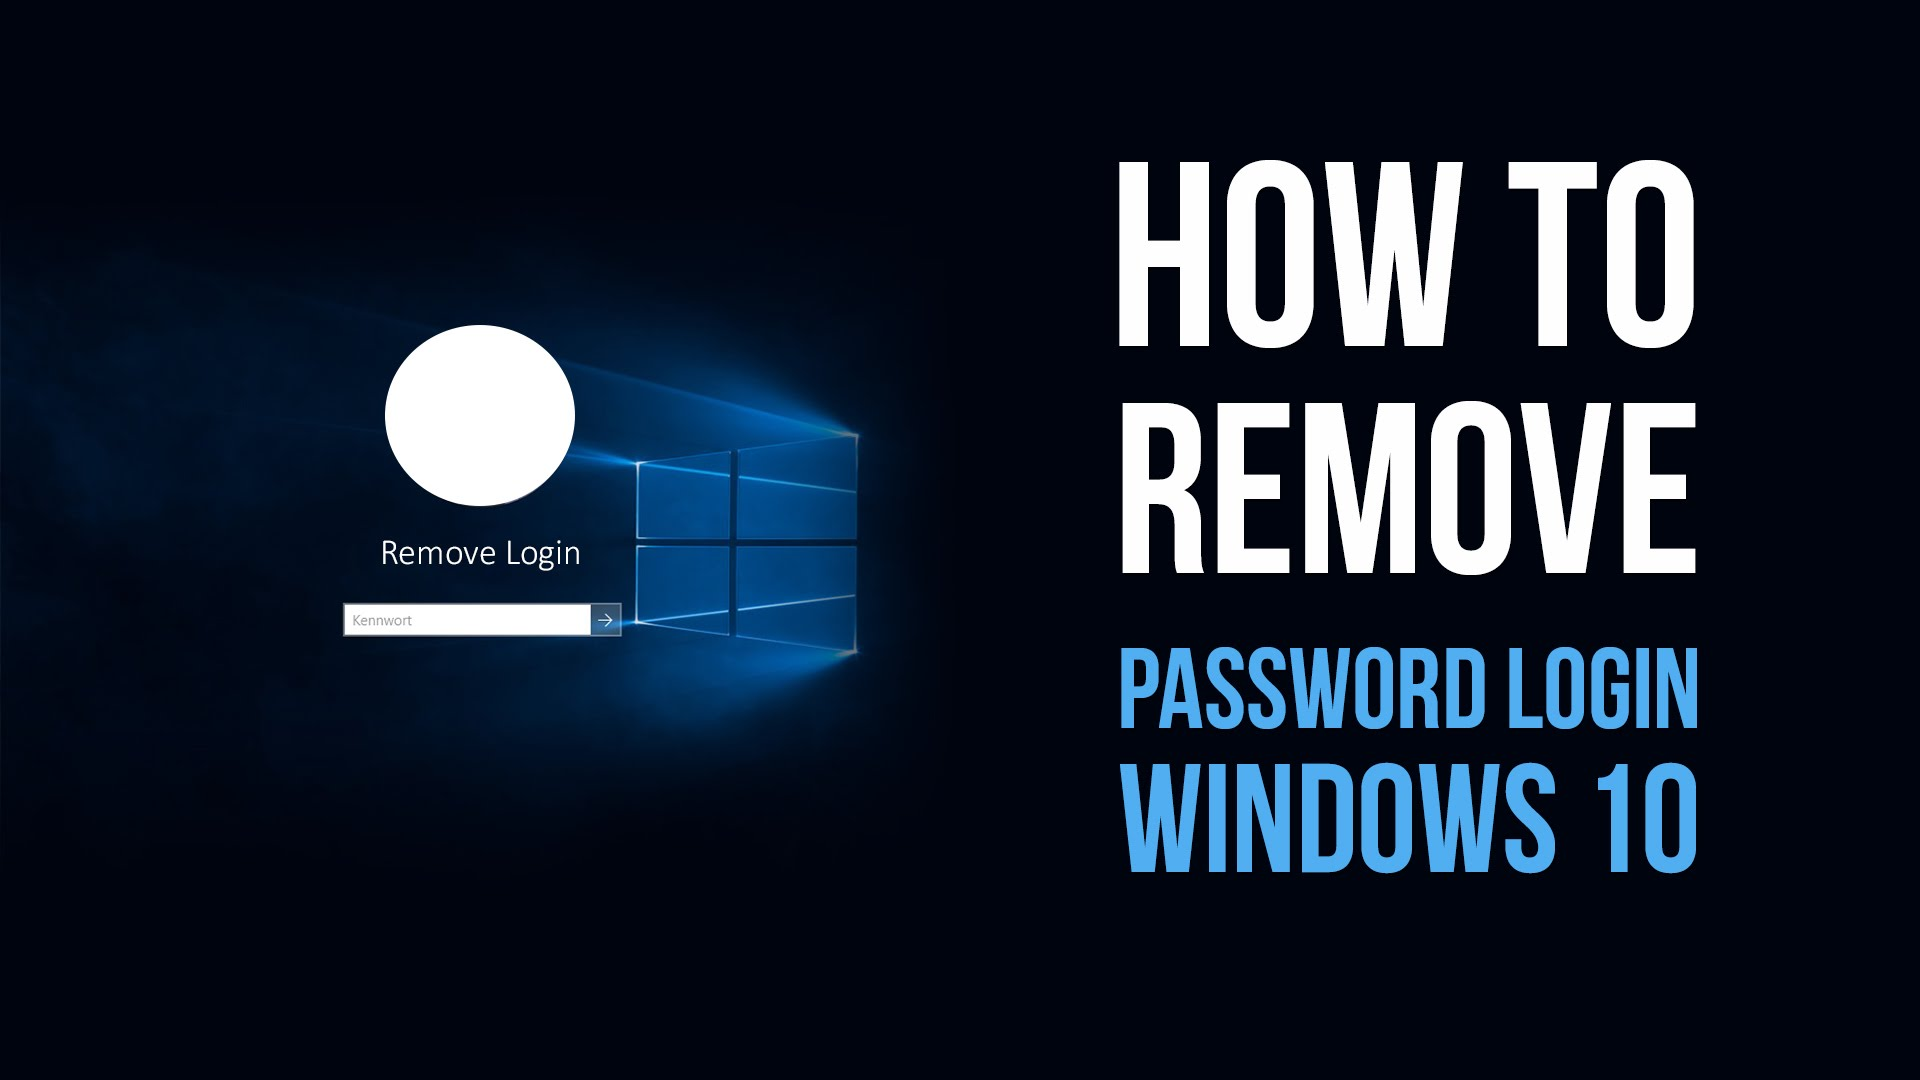 Reset Forgotten Windows 10 Login Password